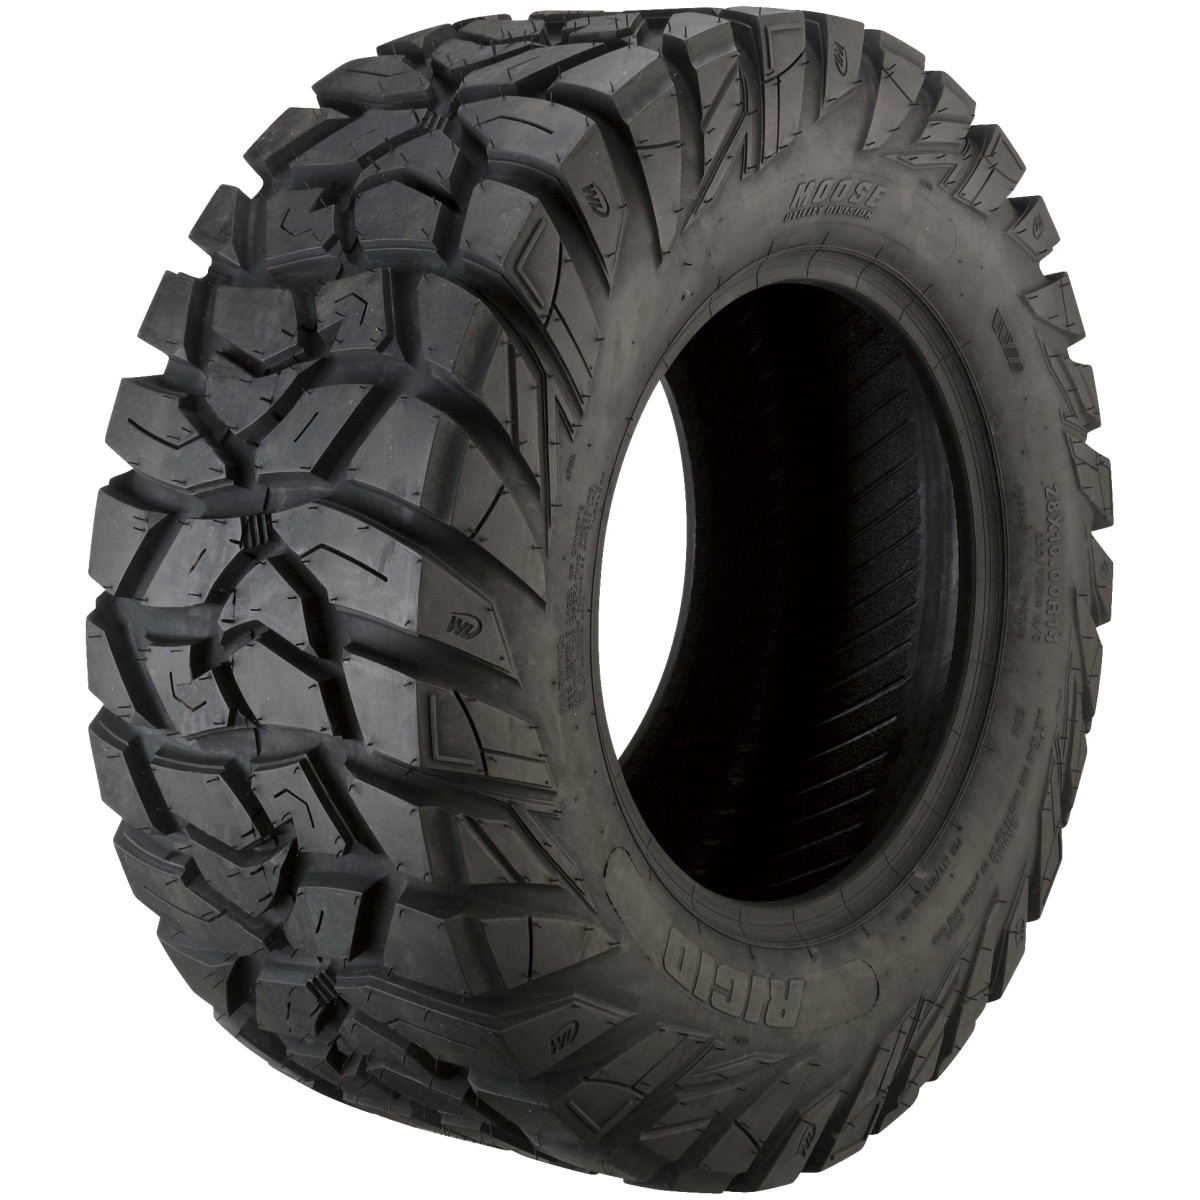 Moose 28x10.00R15 Rigid rengassarja